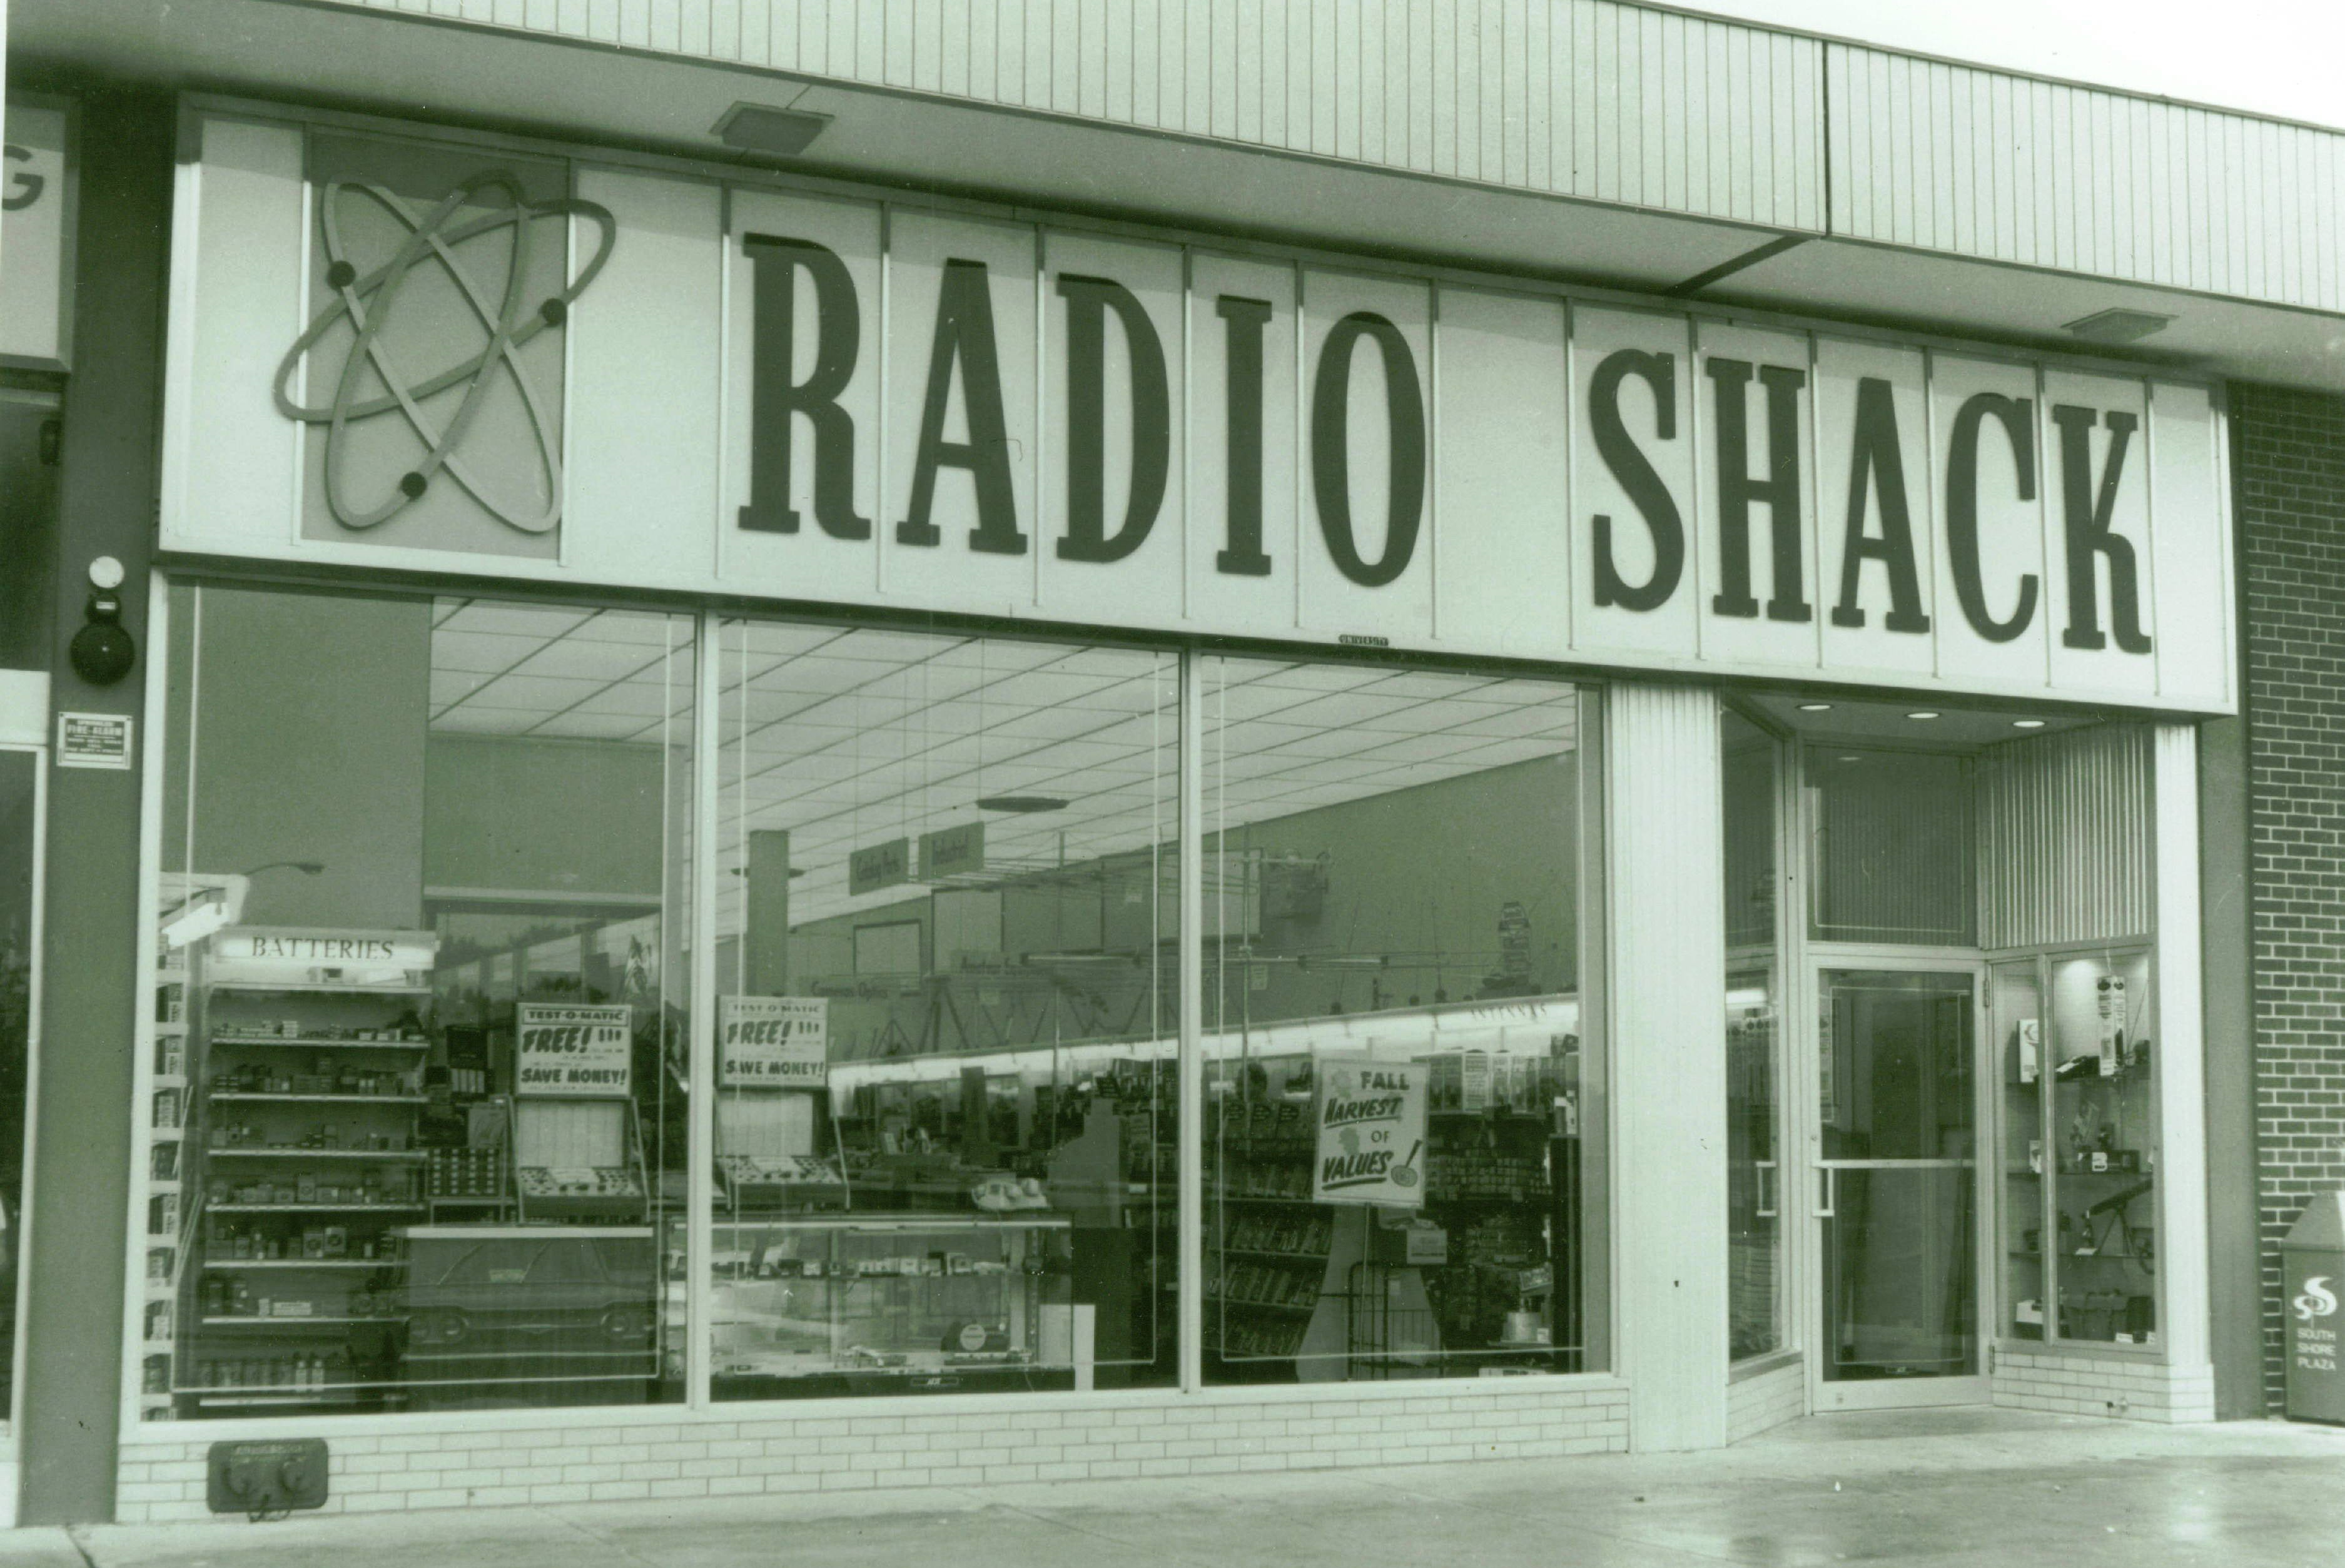 Radio shack charlottesville fashion square Bat Images Pixabay Download Free Pictures